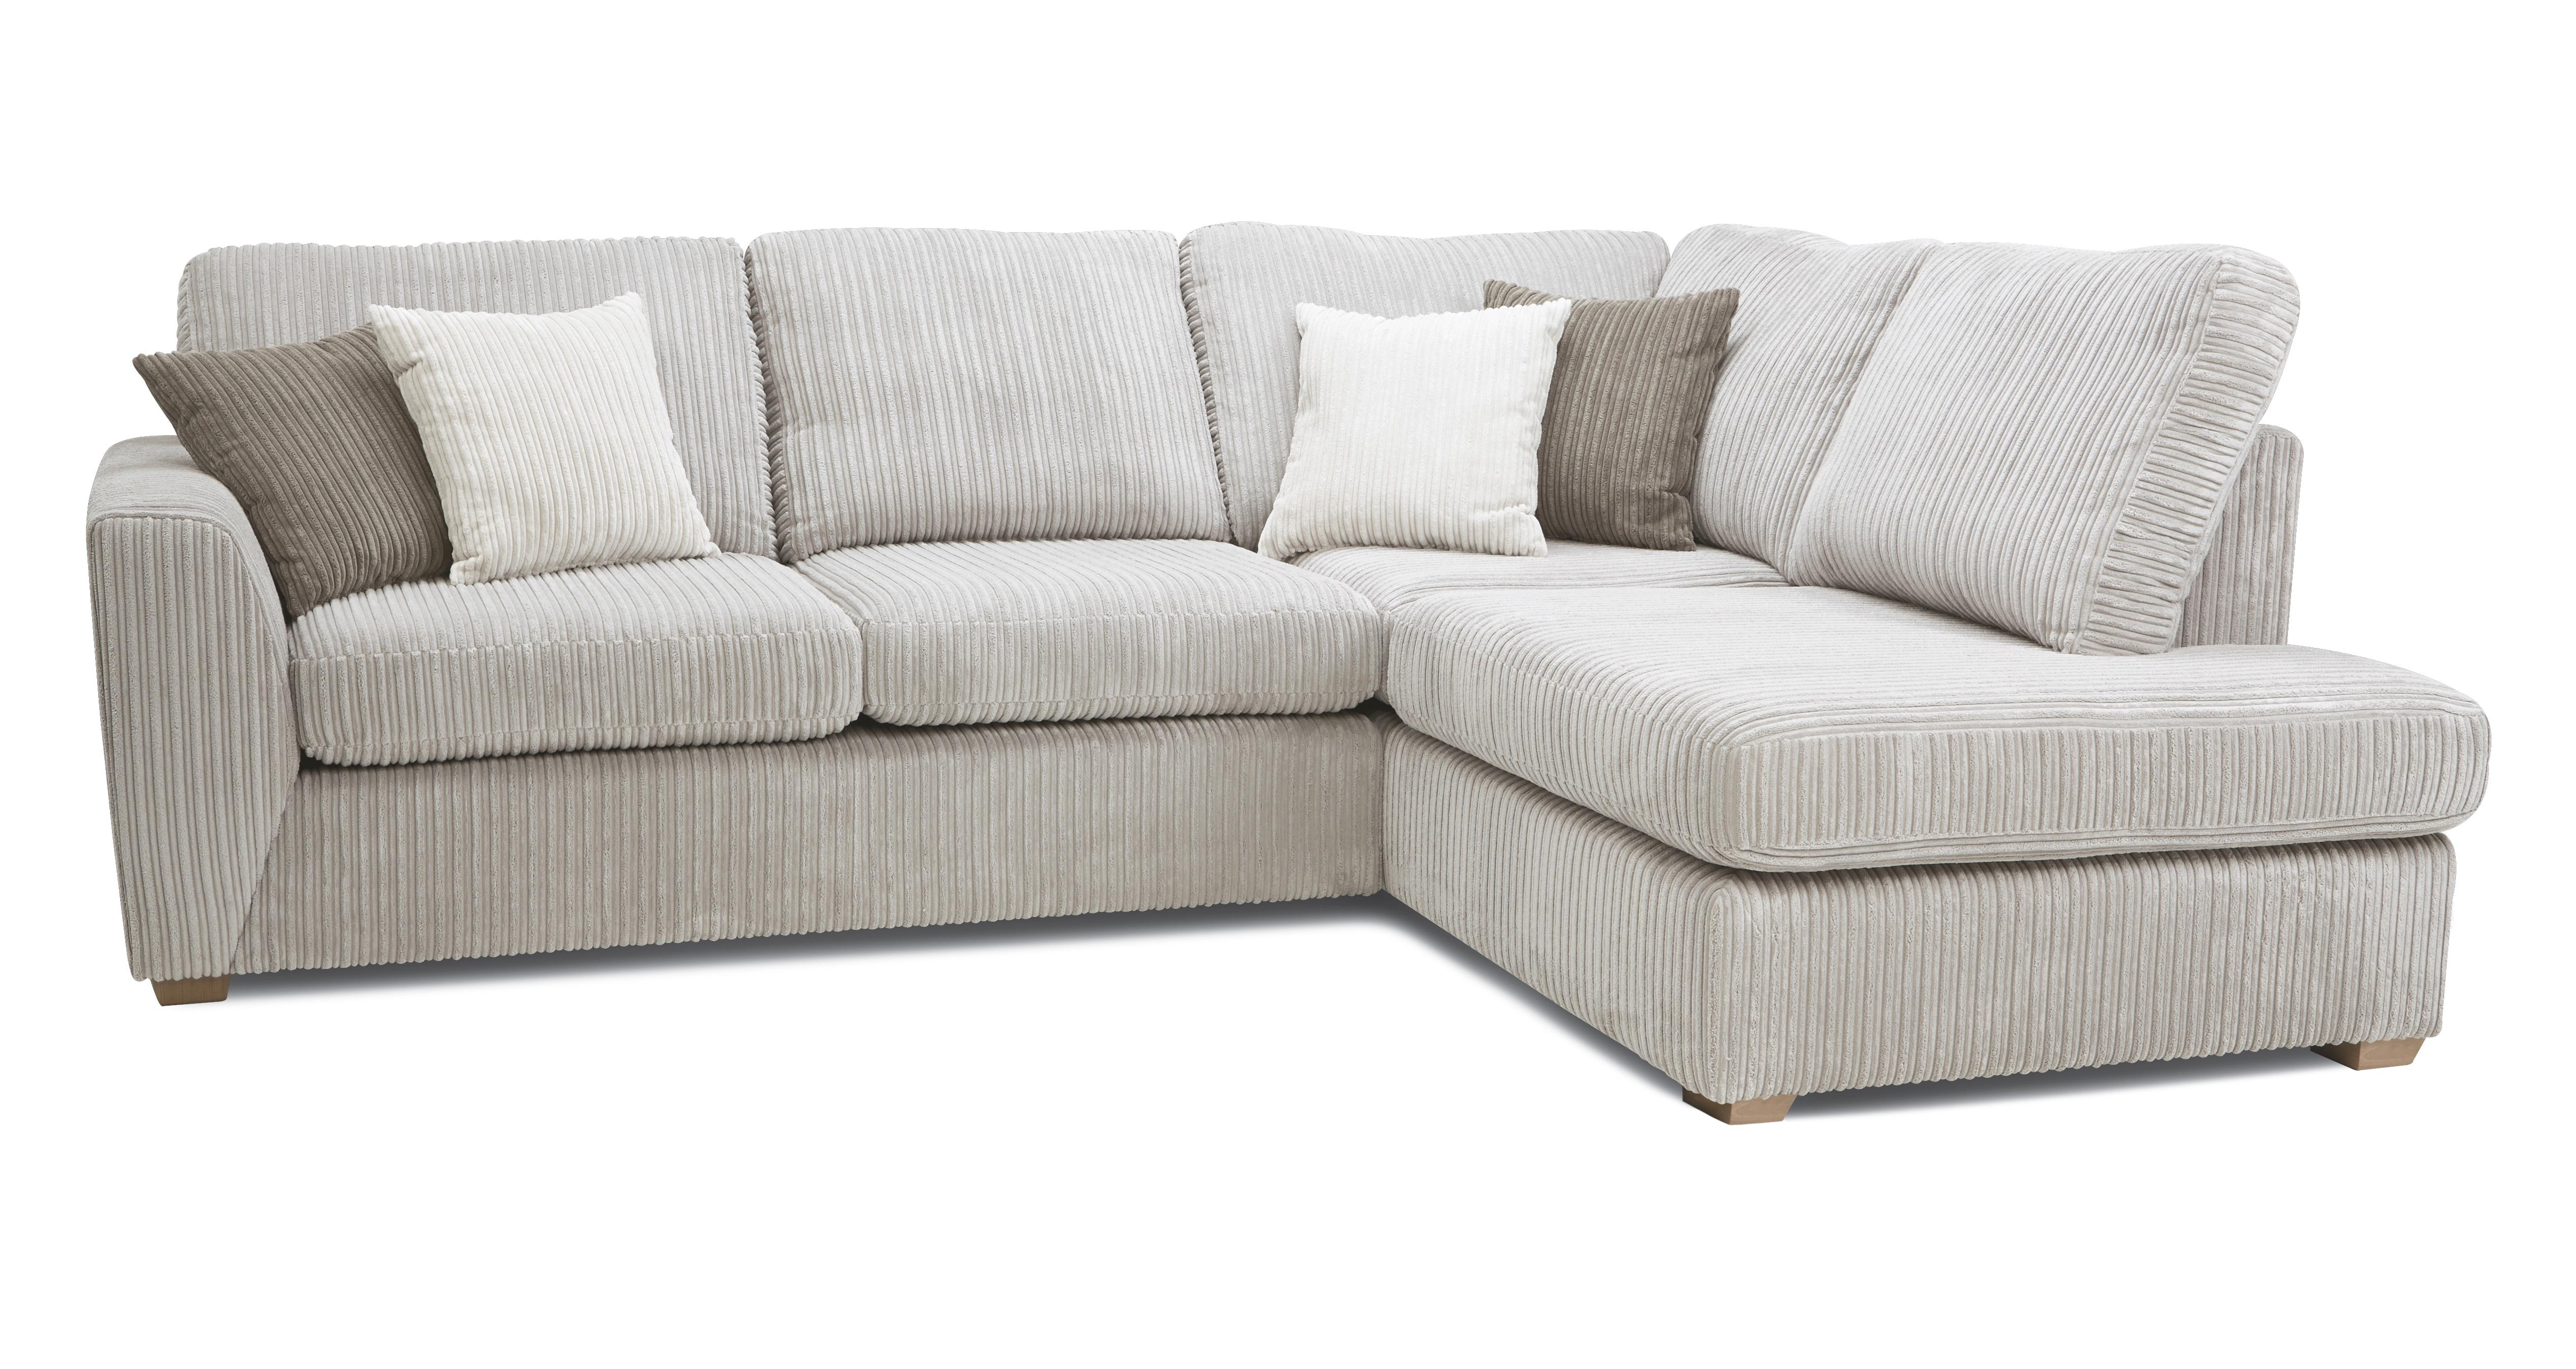 dfs sofas that come apart sofa foam cushions online india marley left hand facing arm open end corner